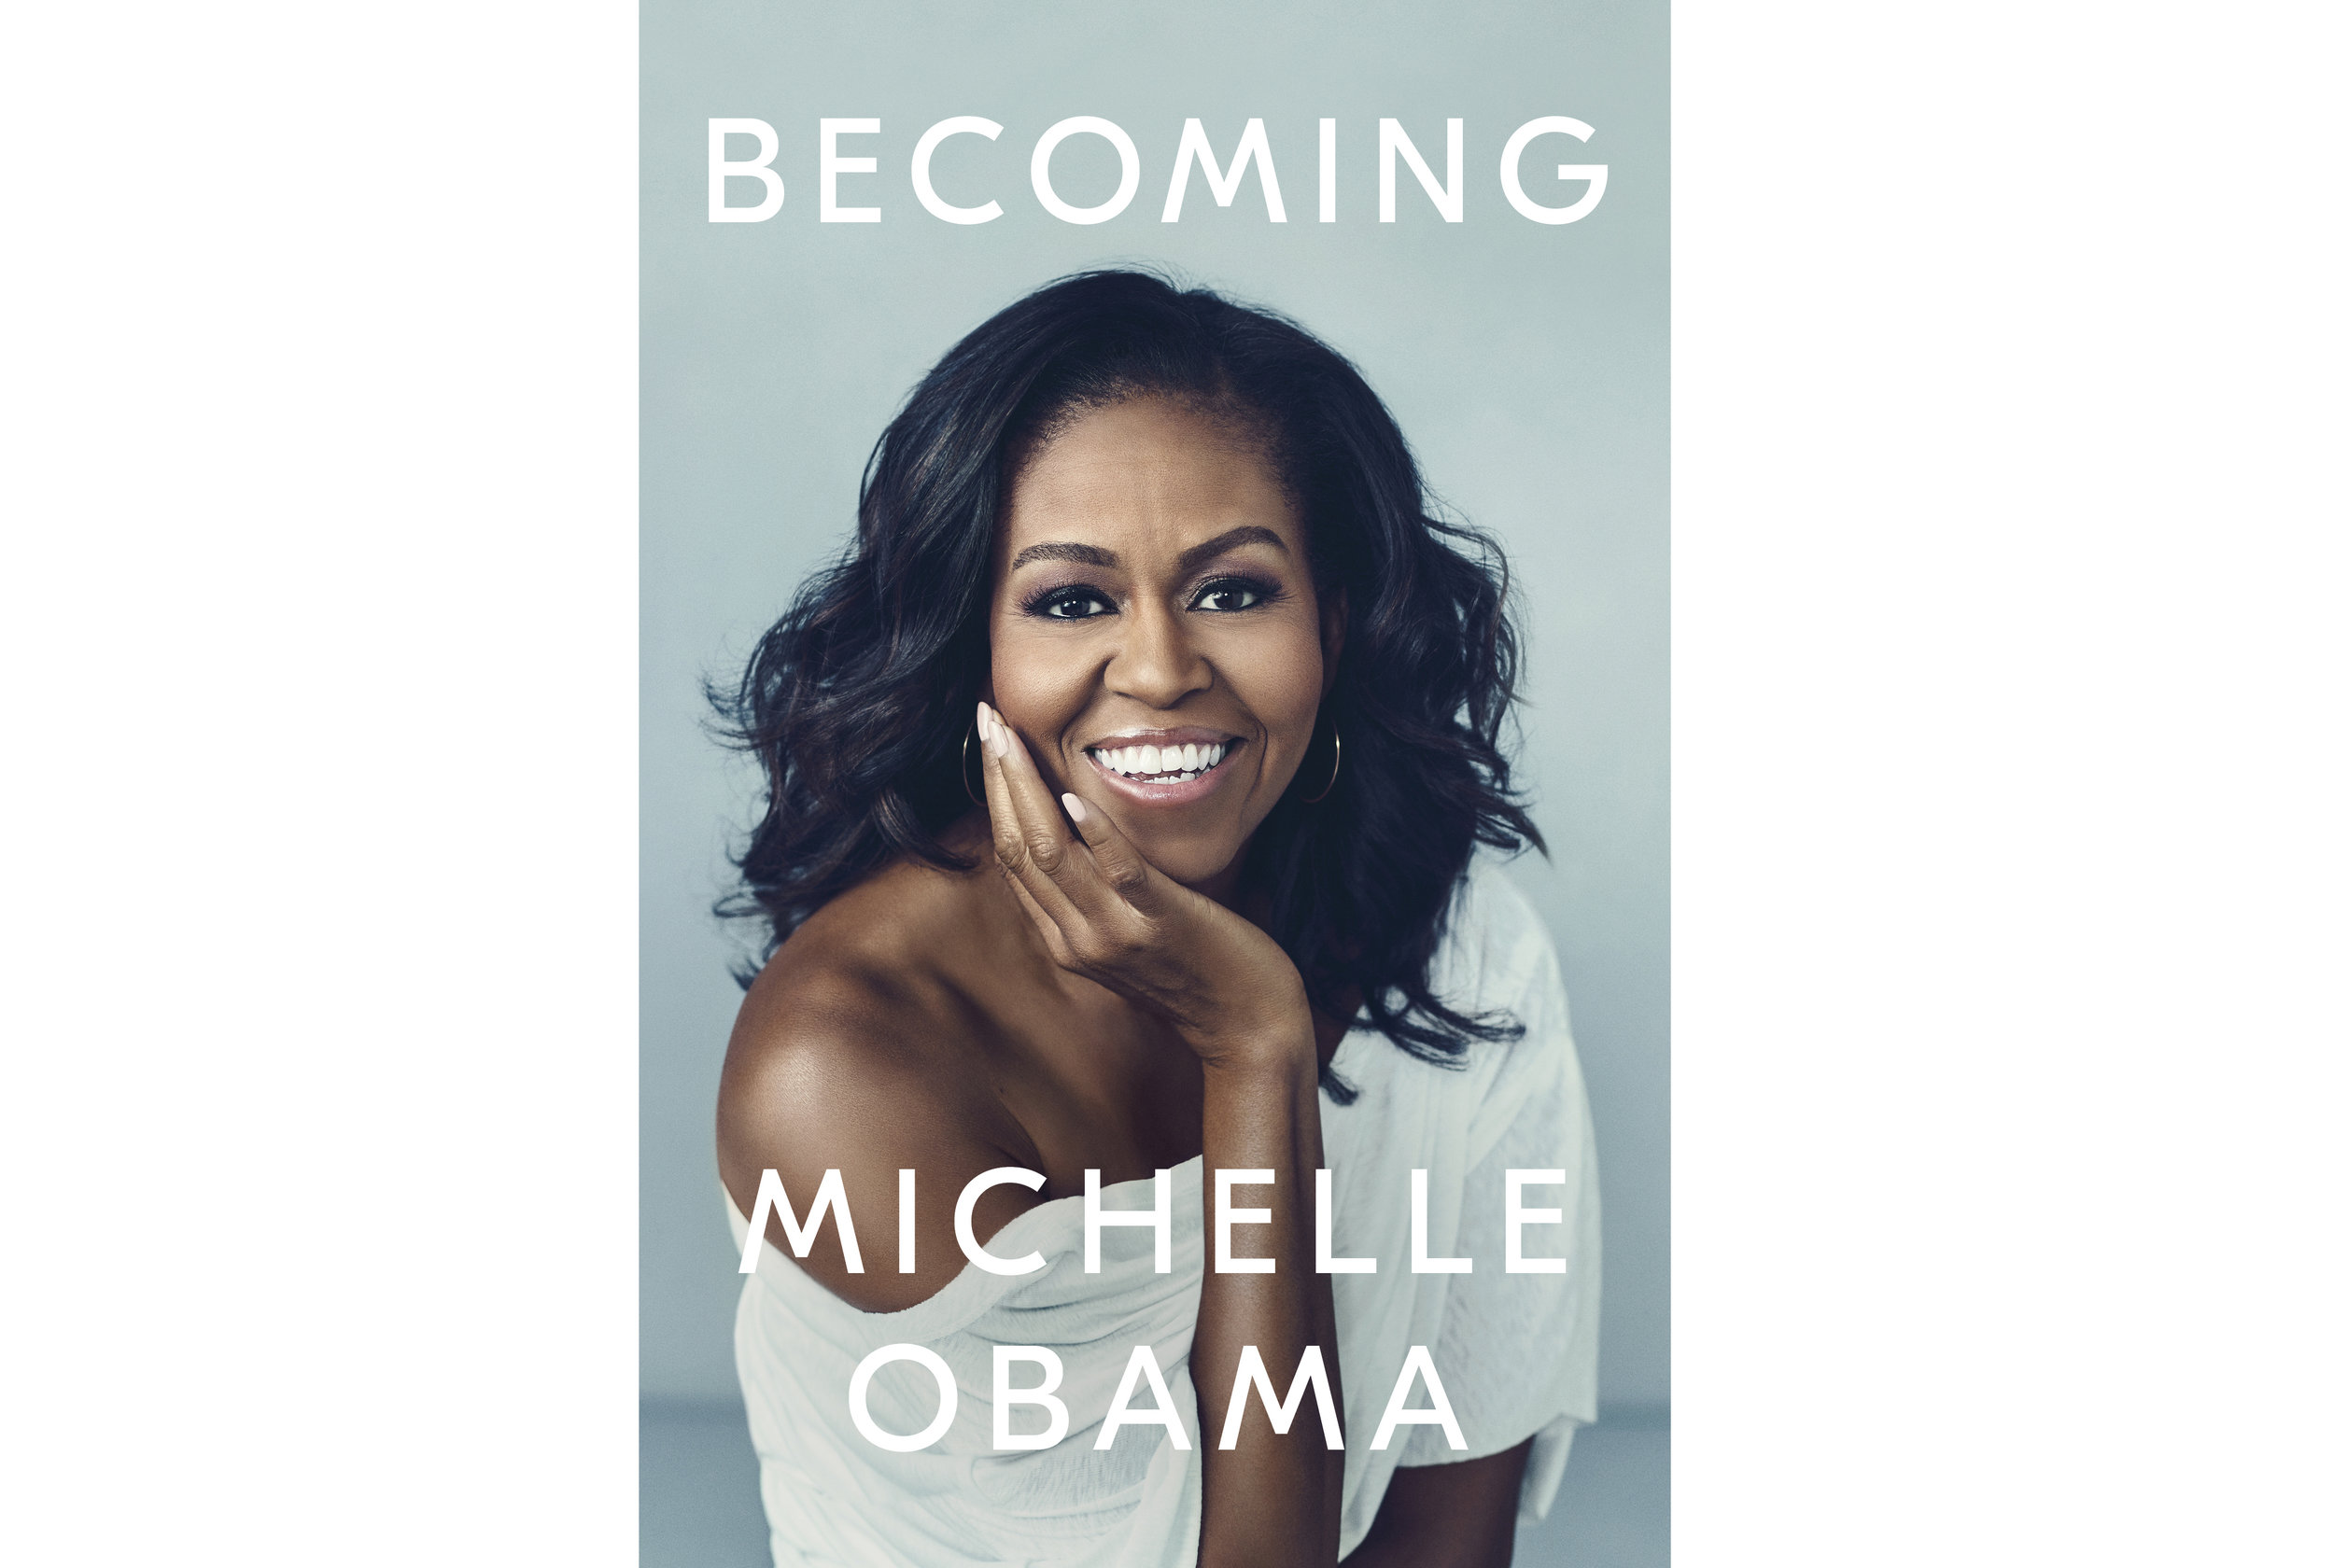 """3. """"BECOMING"""" BY MICHELLE OBAMA - Michelle Obama, need I say more? Her book is written so beautifully, weaving stories of her upbringing, romance, motherhood, advocacy and of course, her time in the White House. I've repeatedly expressed that The Obamas are my dream client… Reading this made me love her even more. The clarity and strength I get through her storytelling has made me a better father.—$19.50"""